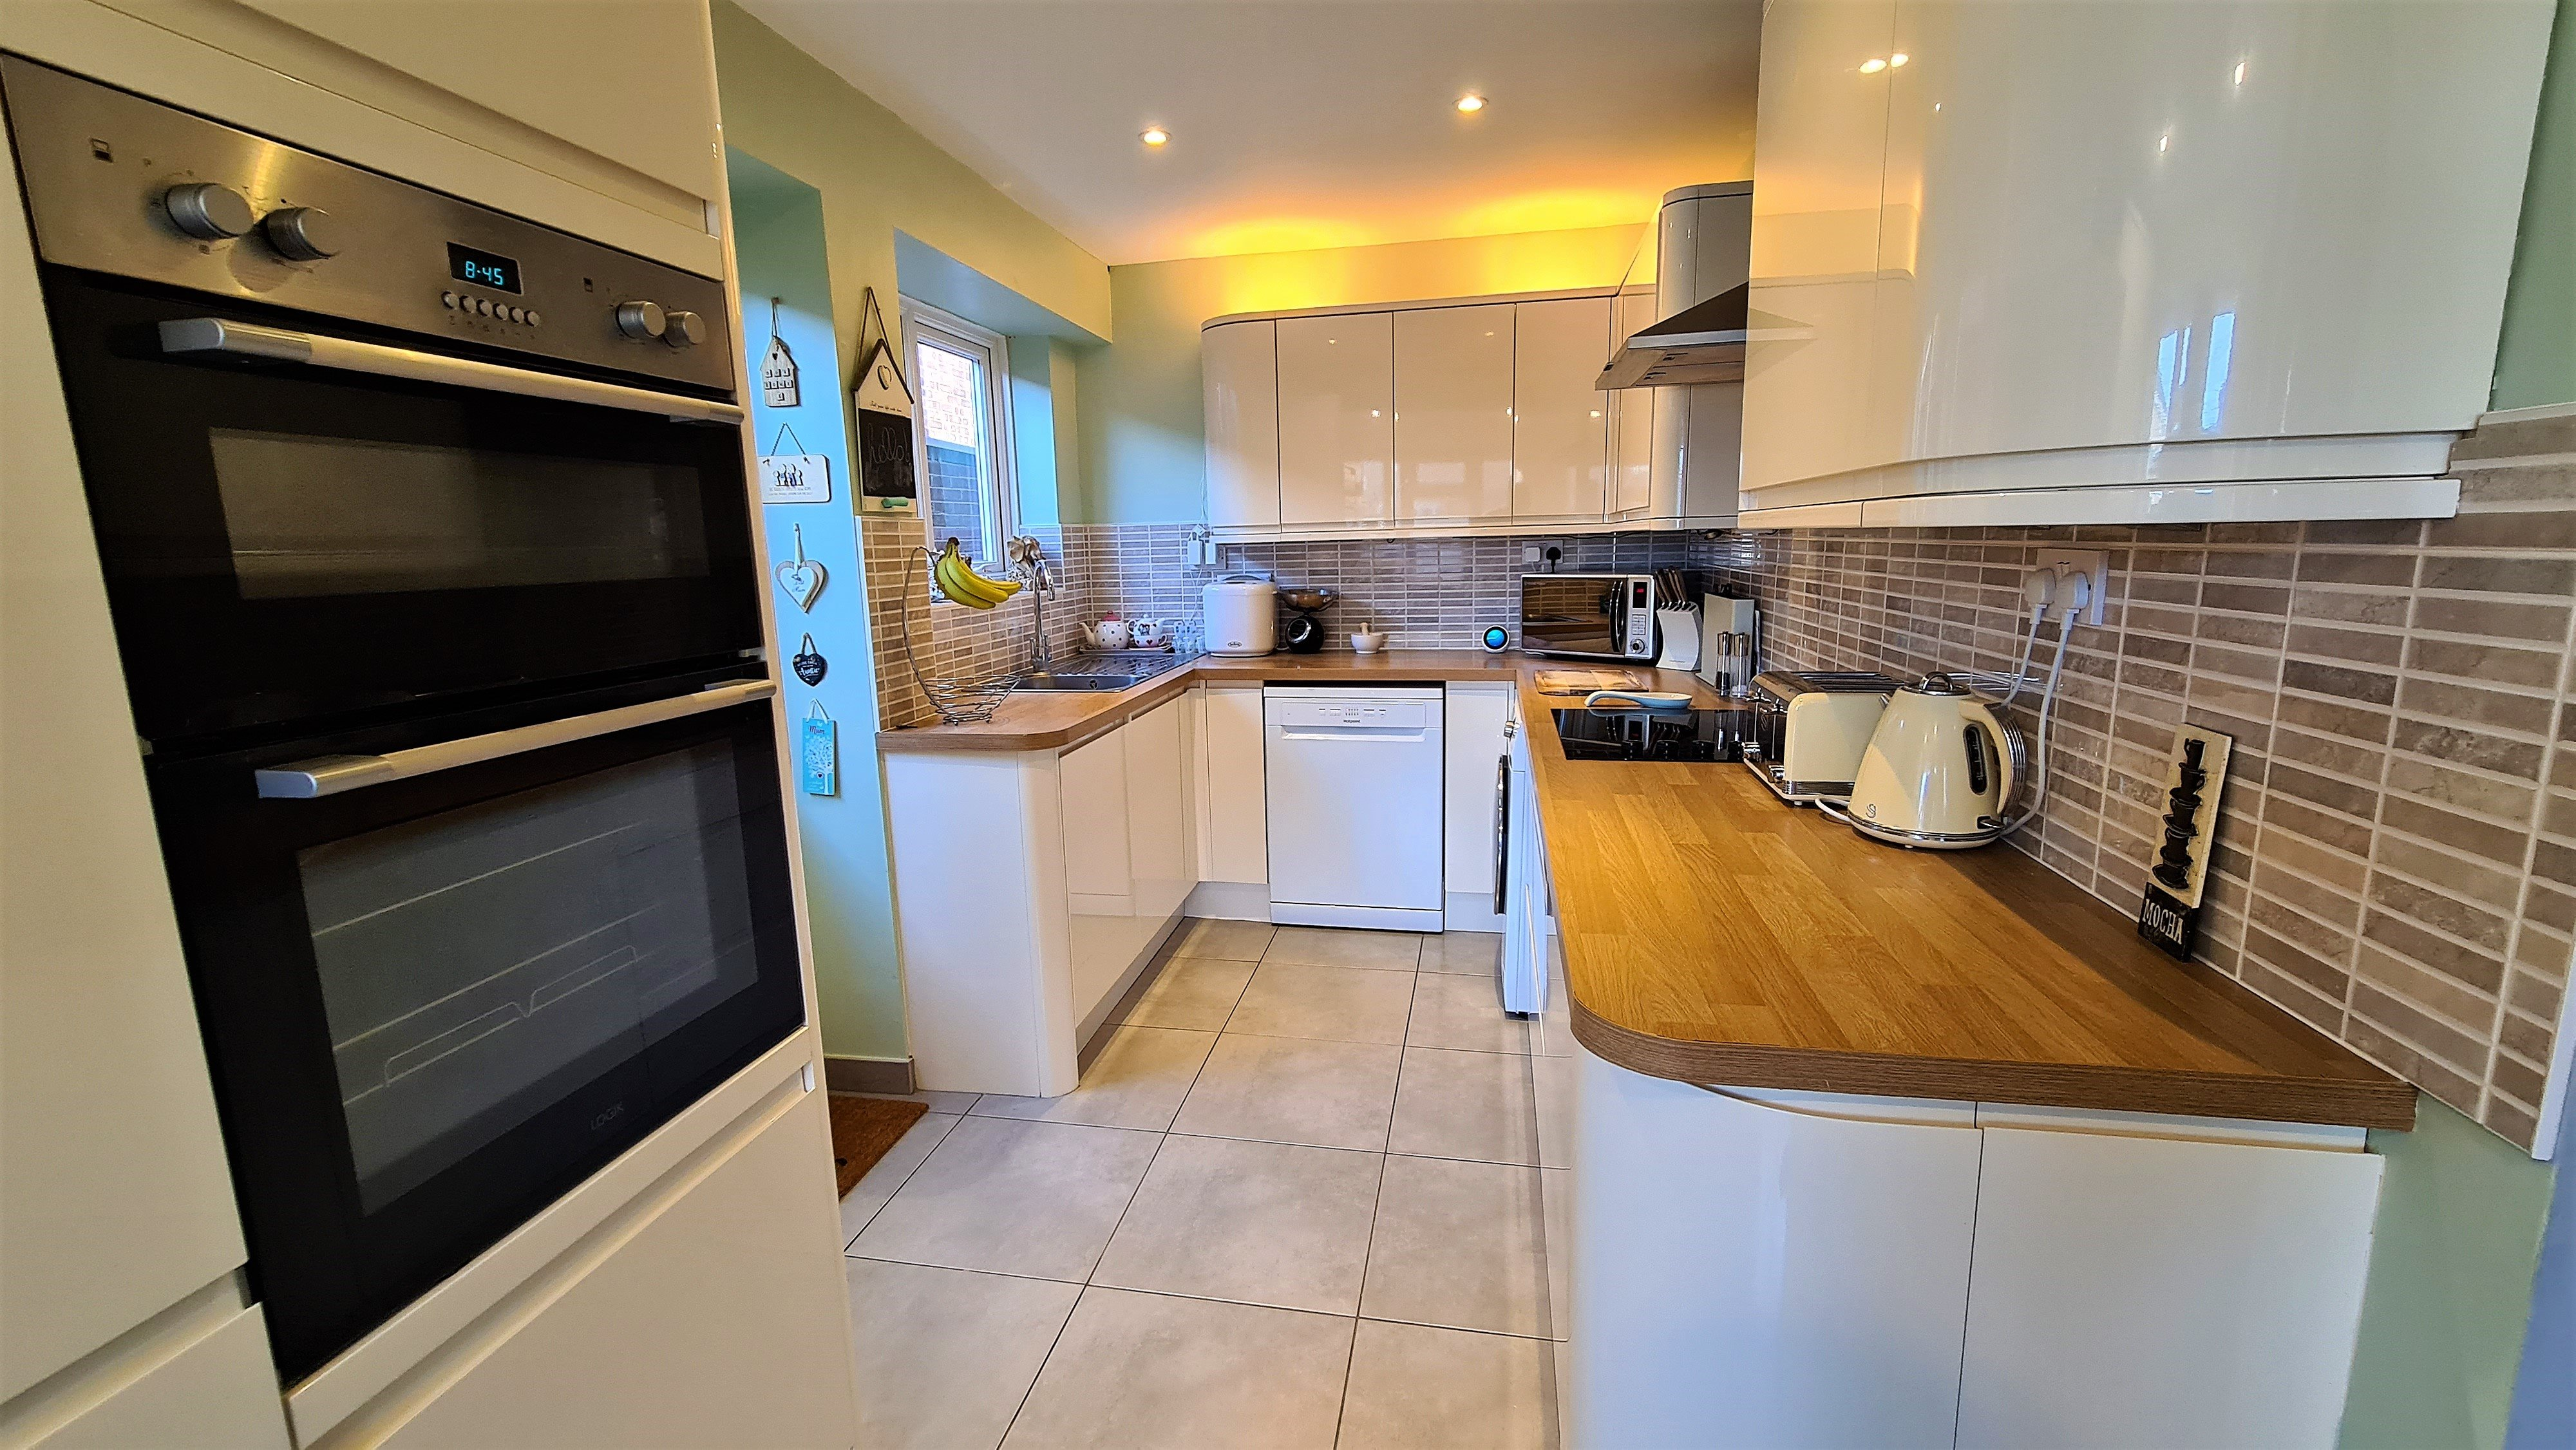 3 bed detached house for sale in Barbrook Way, Bicknacre - Property Image 1